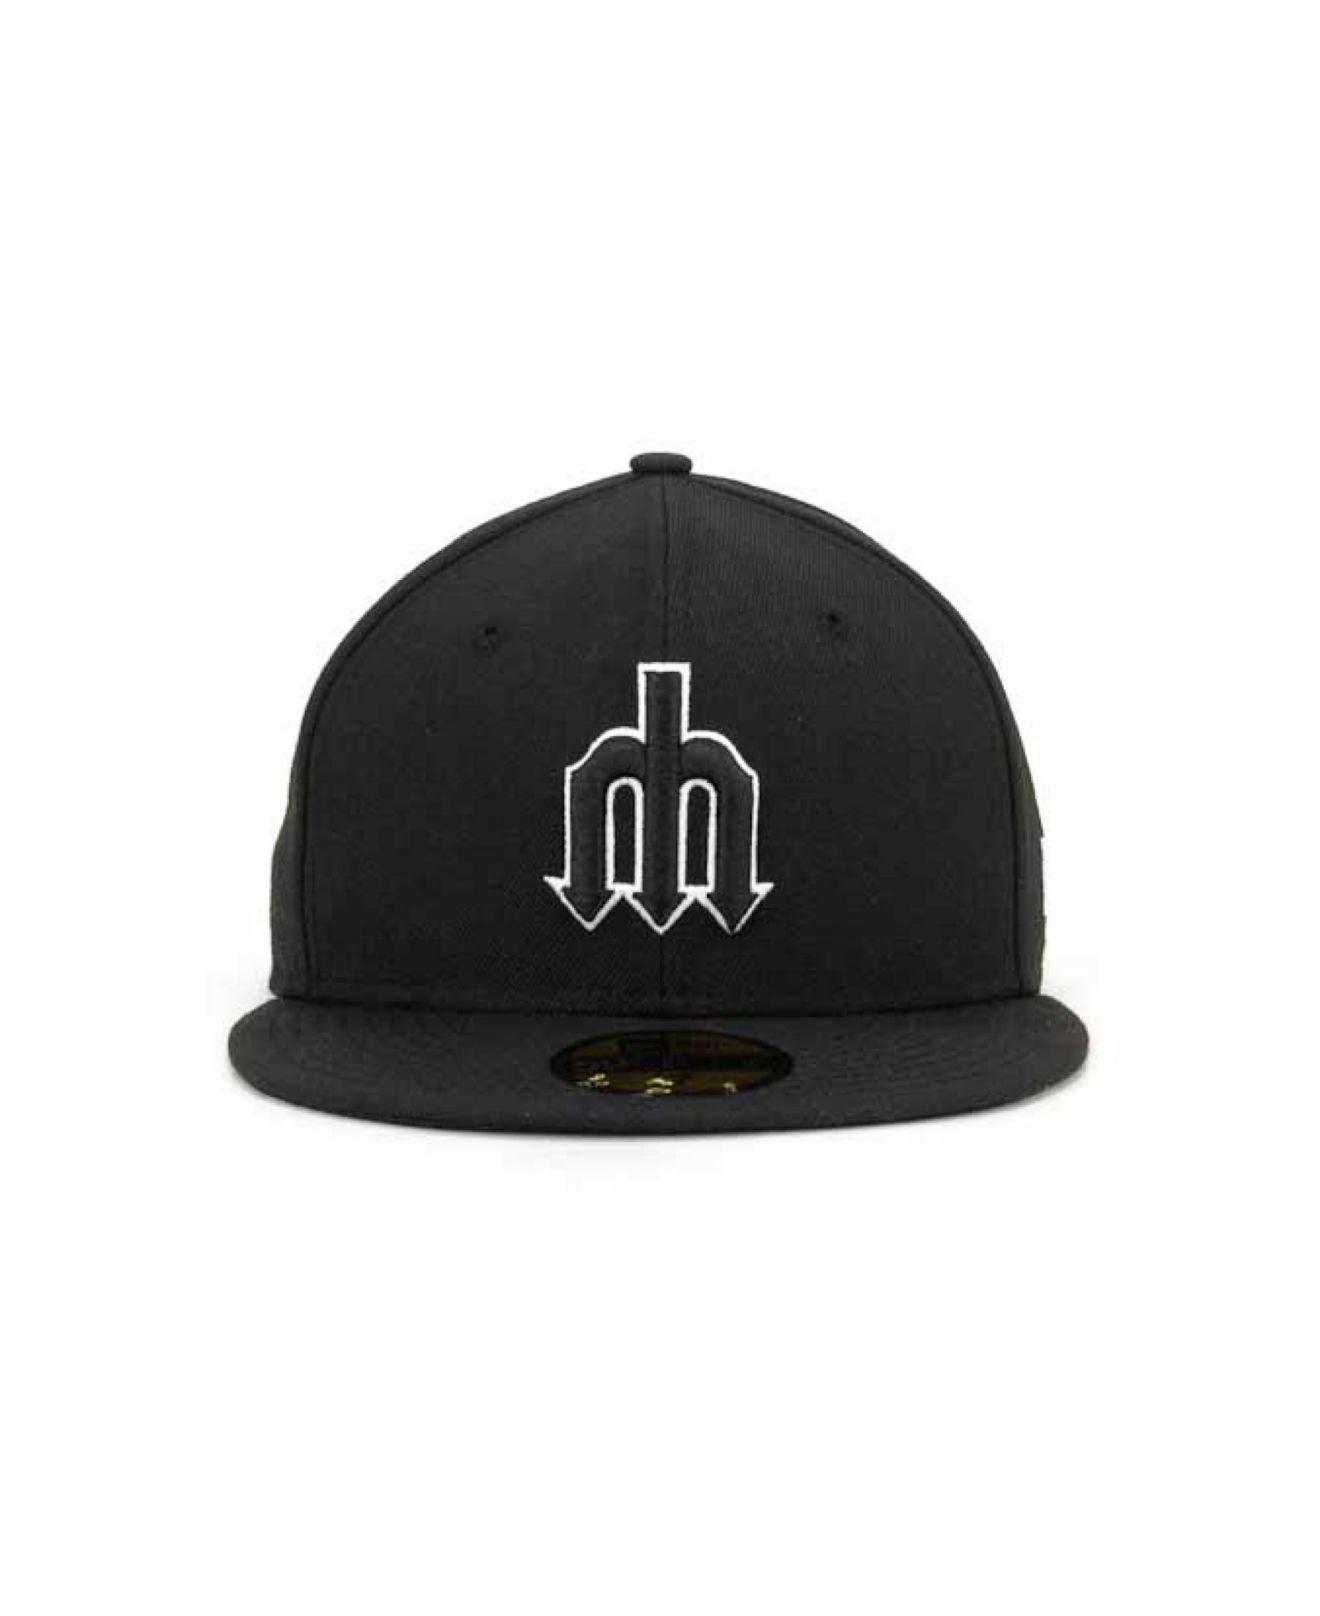 Lyst - KTZ Seattle Mariners Black And White Fashion 59fifty Cap in Black  for Men 9f7e3ffa89cc